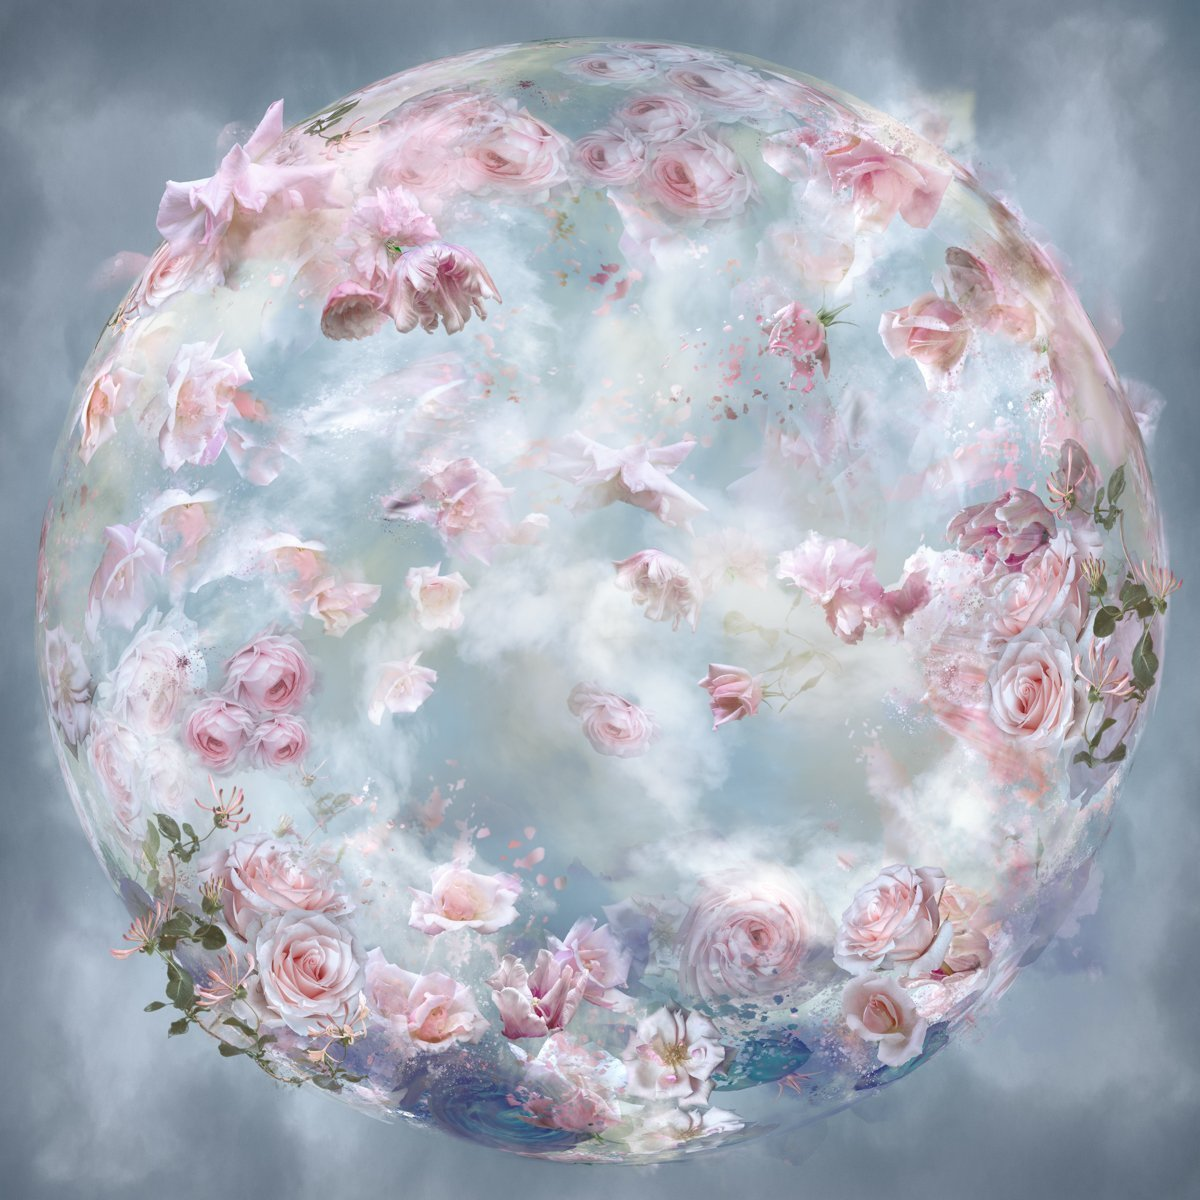 floral sphere filled with pink flowers and clouds